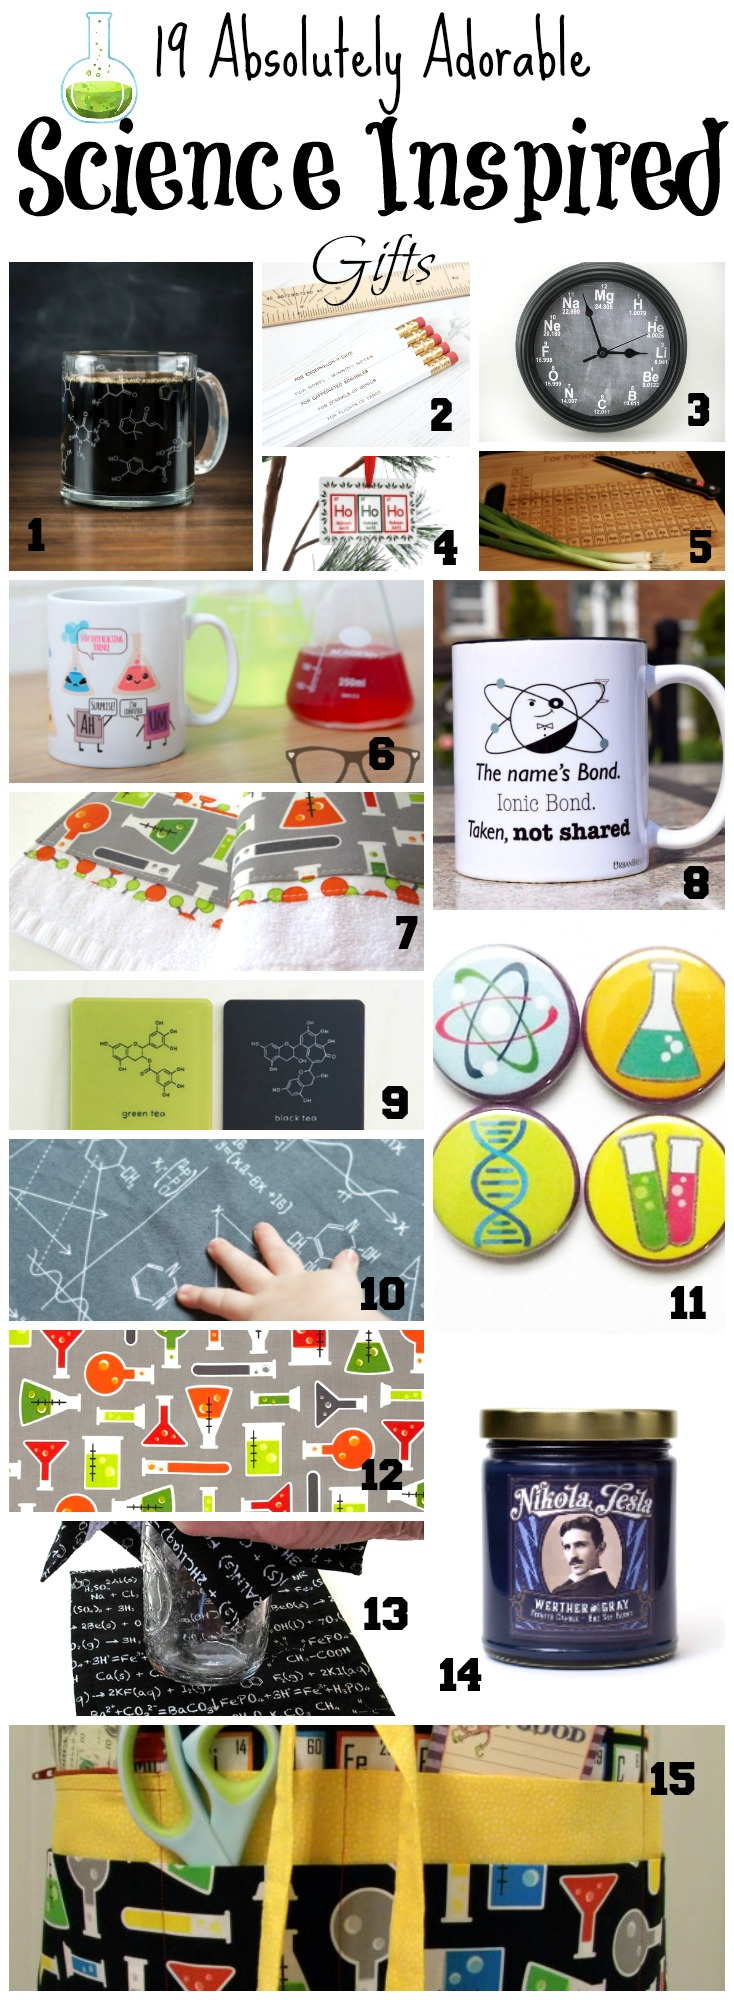 19 Absolutely adorable science inspired gifts for the scientist or science lover! Science gifts, science gift ideas, and more on chemistrycachet.com